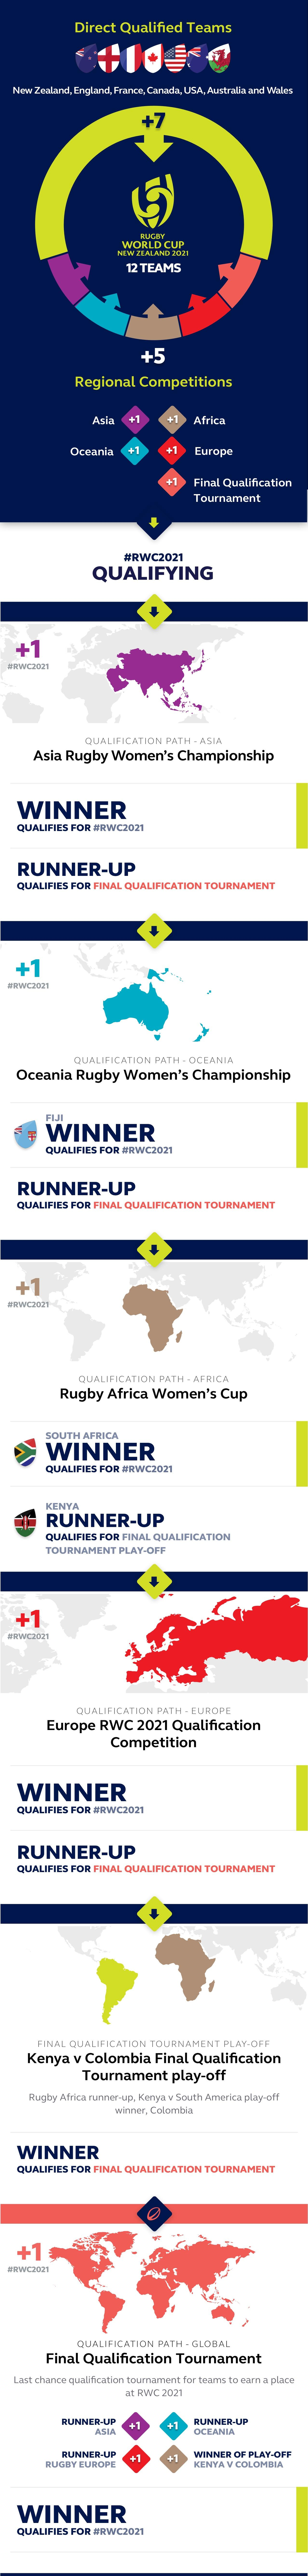 http://www.worldrugby.org/photos/579918